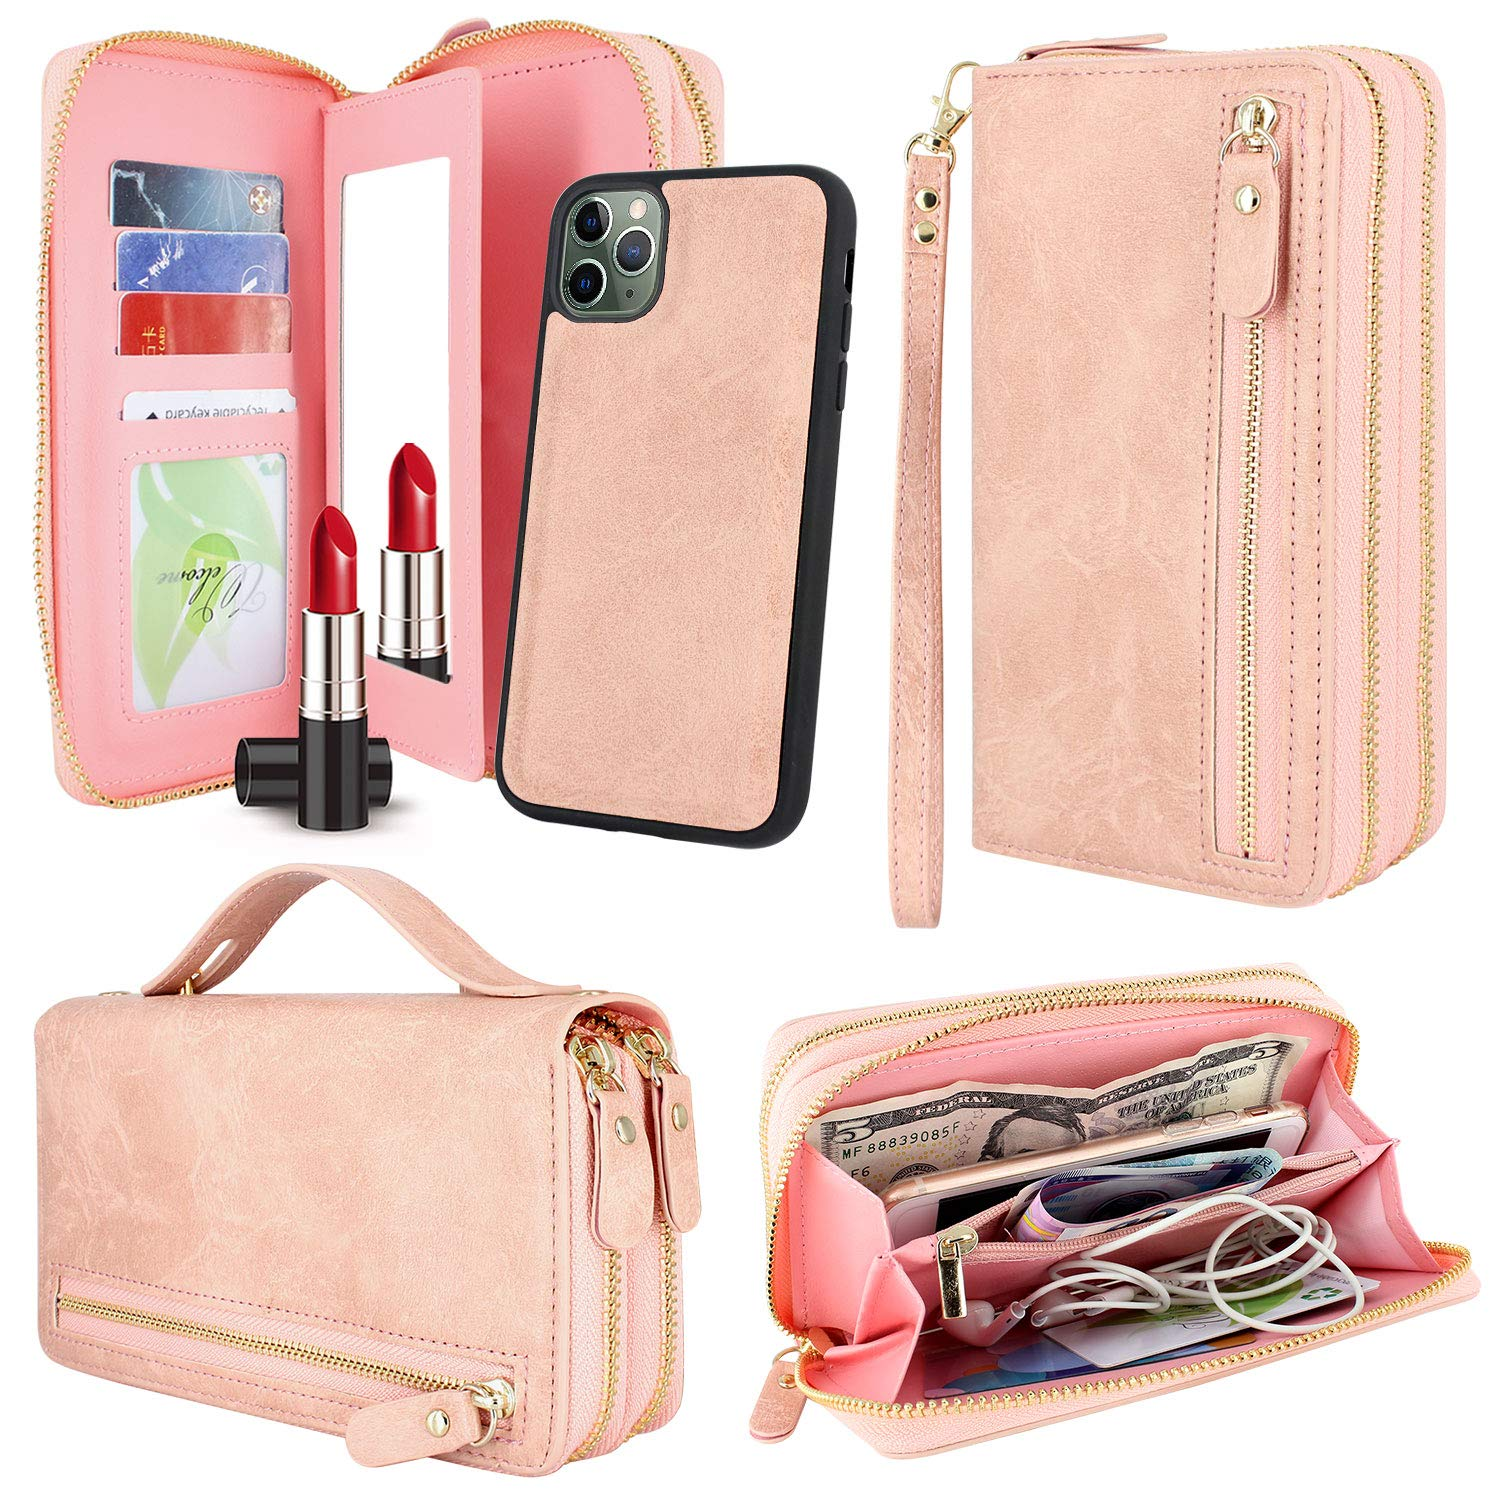 Harryshell Multi Zipper Detachable Magnetic Wallet Case Clutch Purse with Card Slots Mirror Handstrap for iPhone 11 Pro Max 6.5 inch 2019 (Pink)